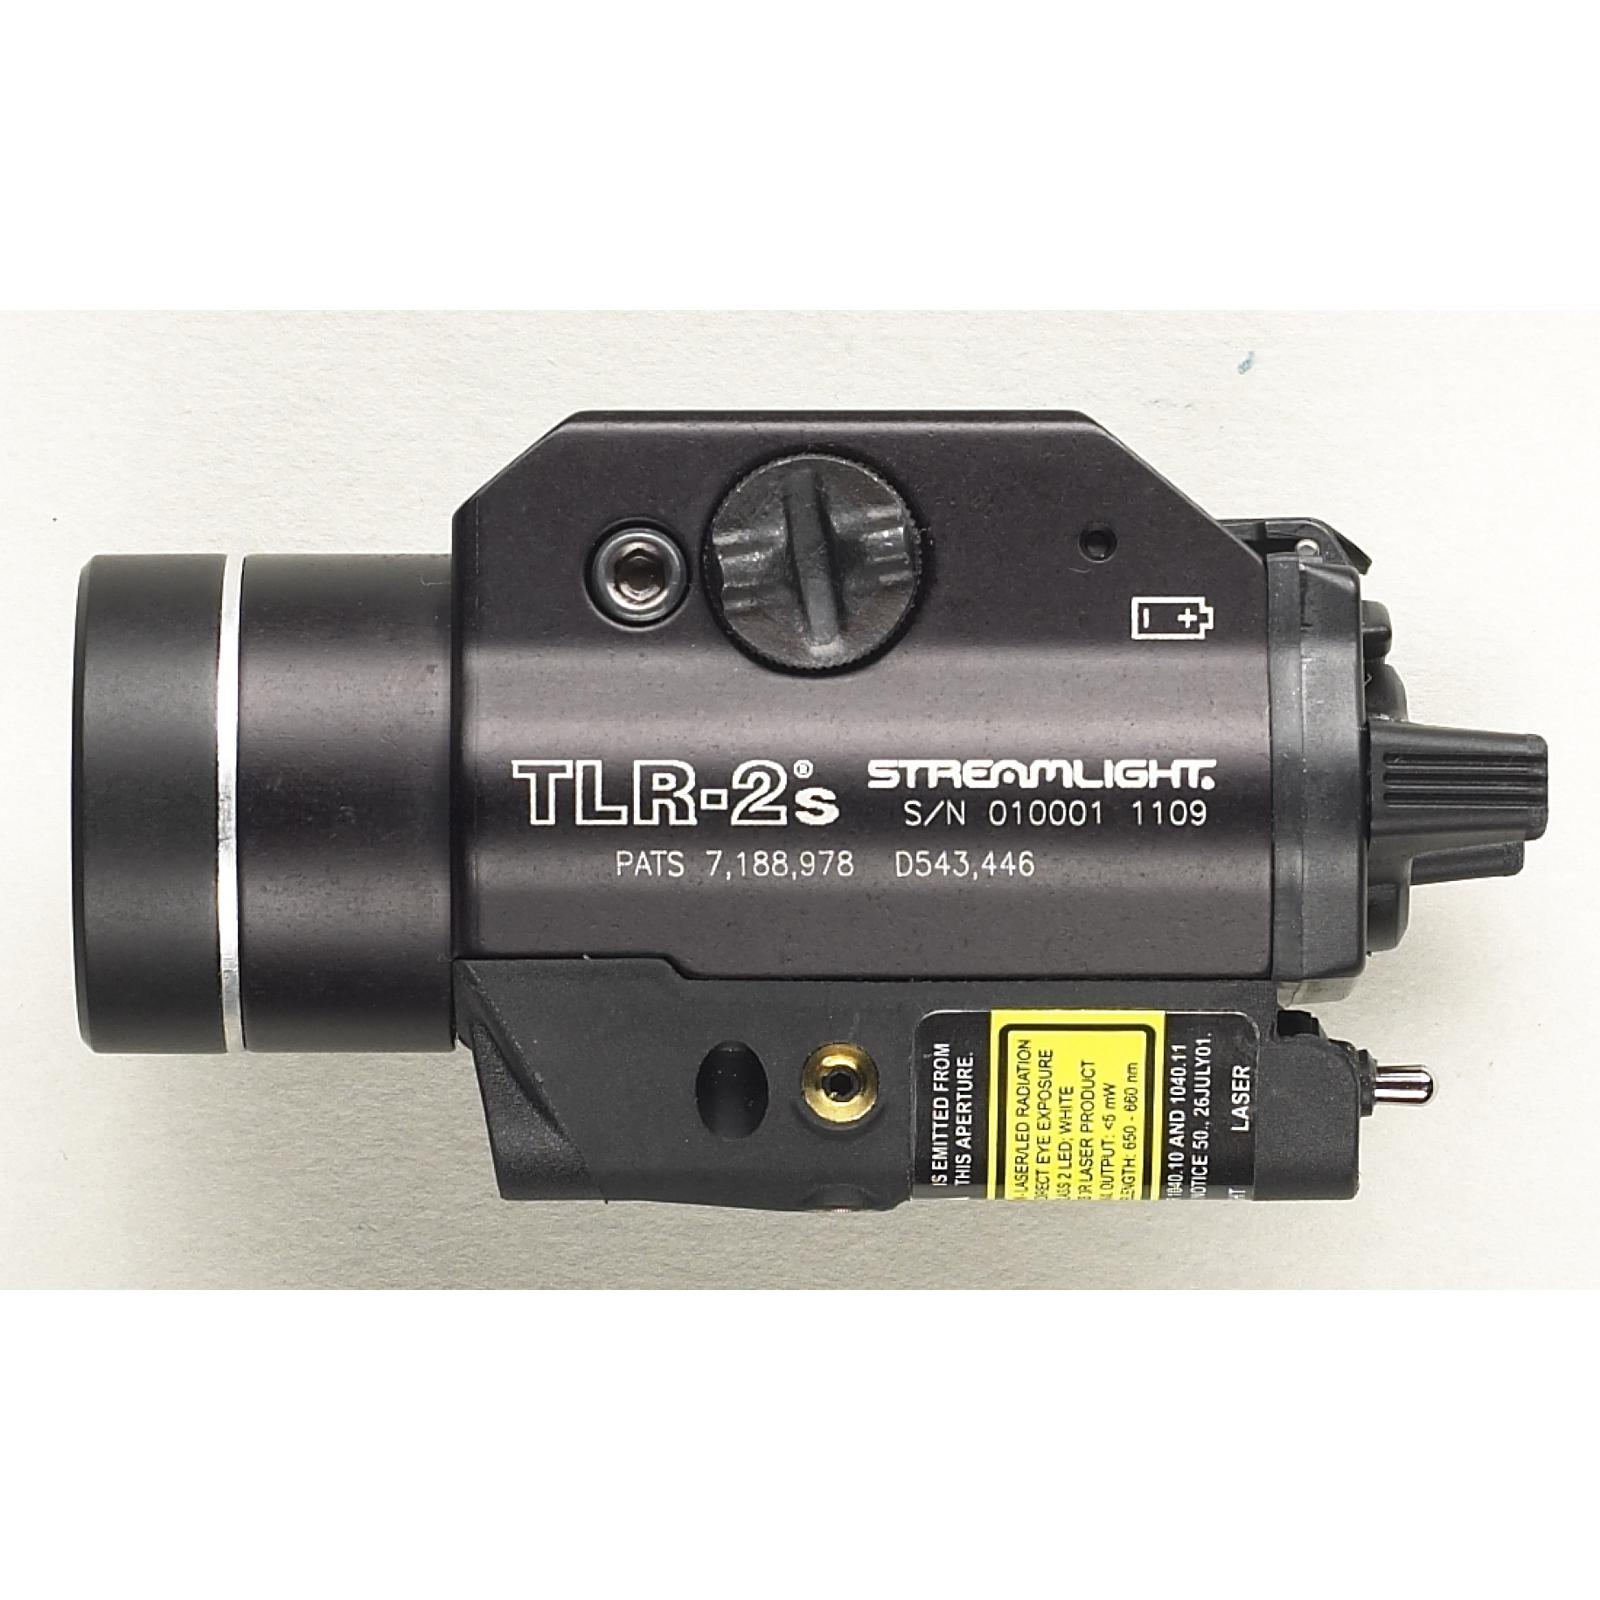 Streamlight TLR-2s 650-660nm Red Laser 69230 Weapon Light W/Strobing